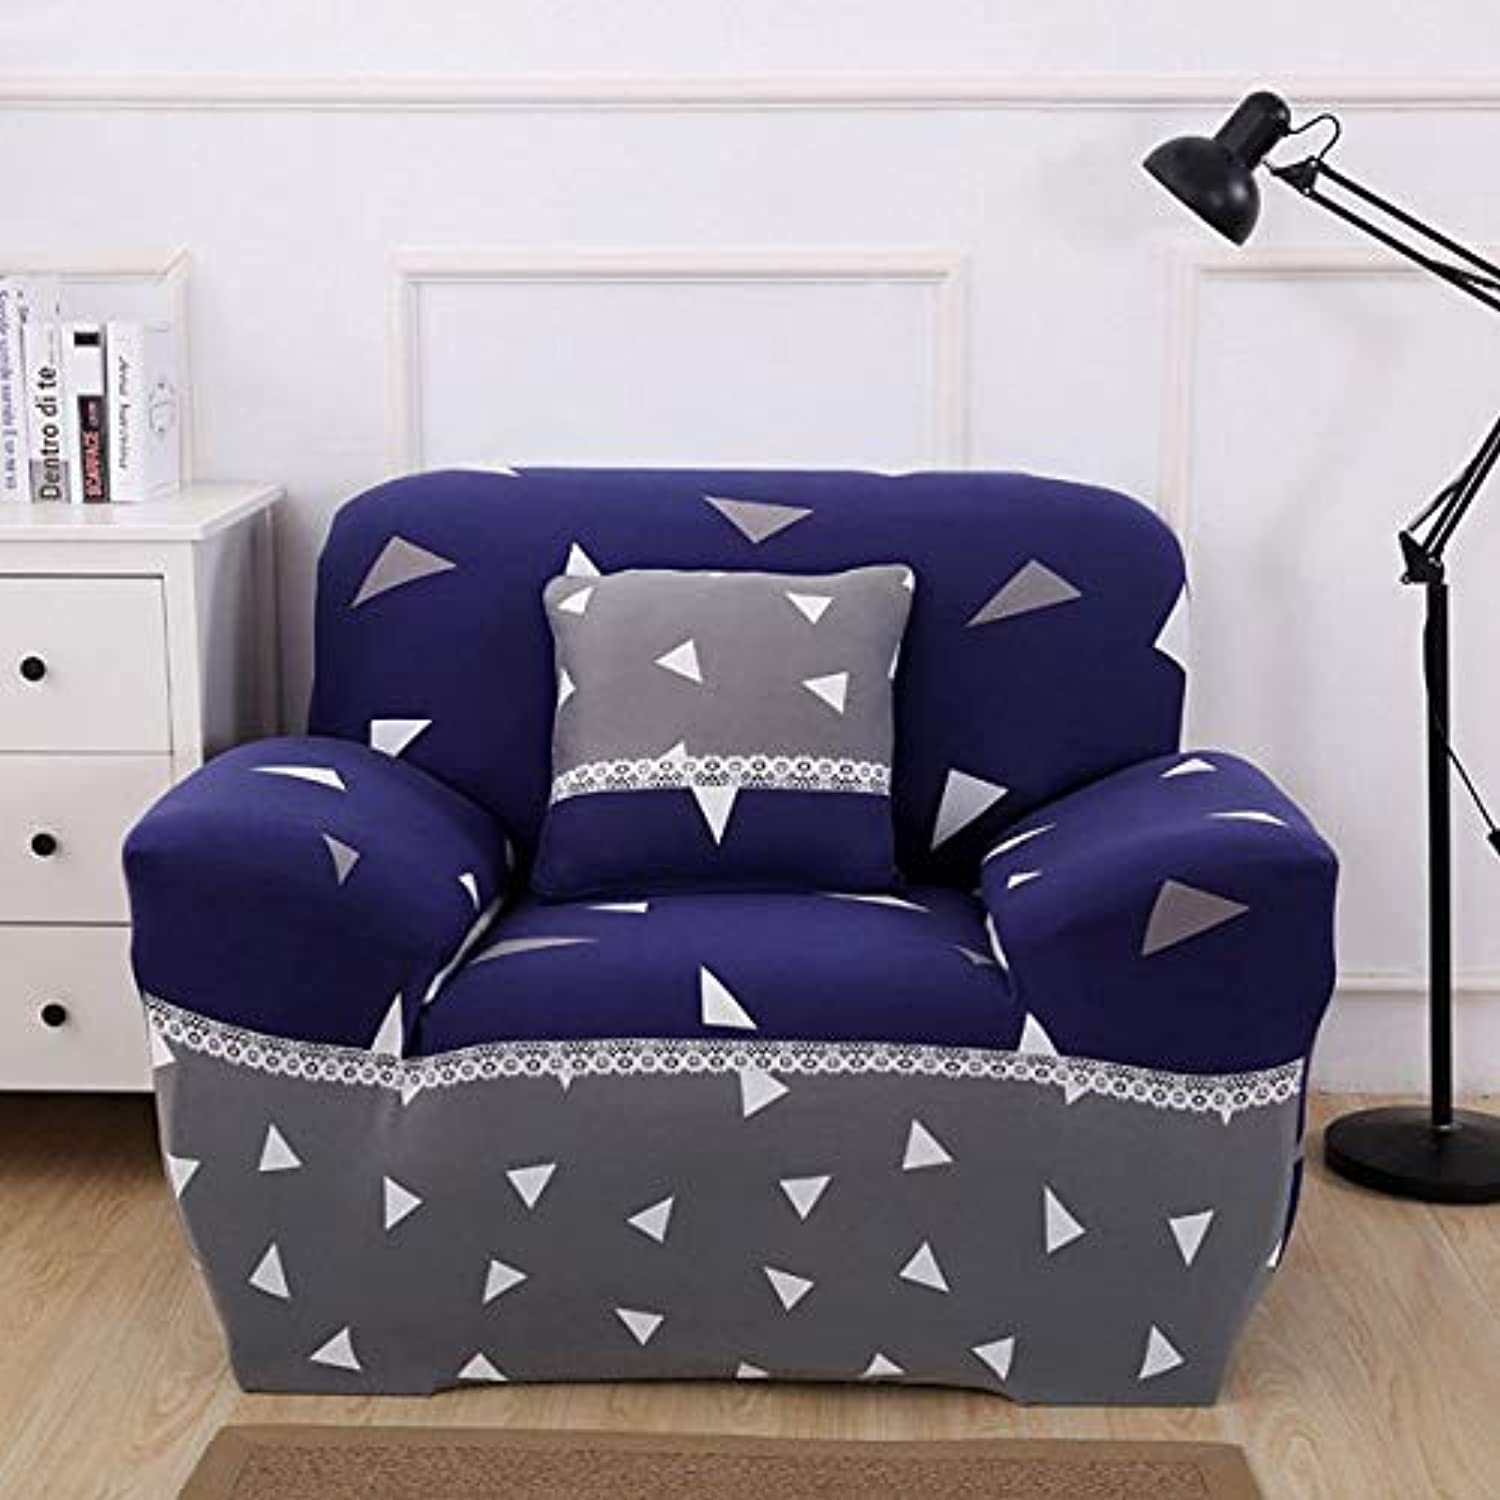 Farmerly Minimalist Geometric Stripe Printing Sofa Predective Slipcover Case Anti-Dirty Dust-Proof Elastic Couch Seat Cover for Living   12, Single seat